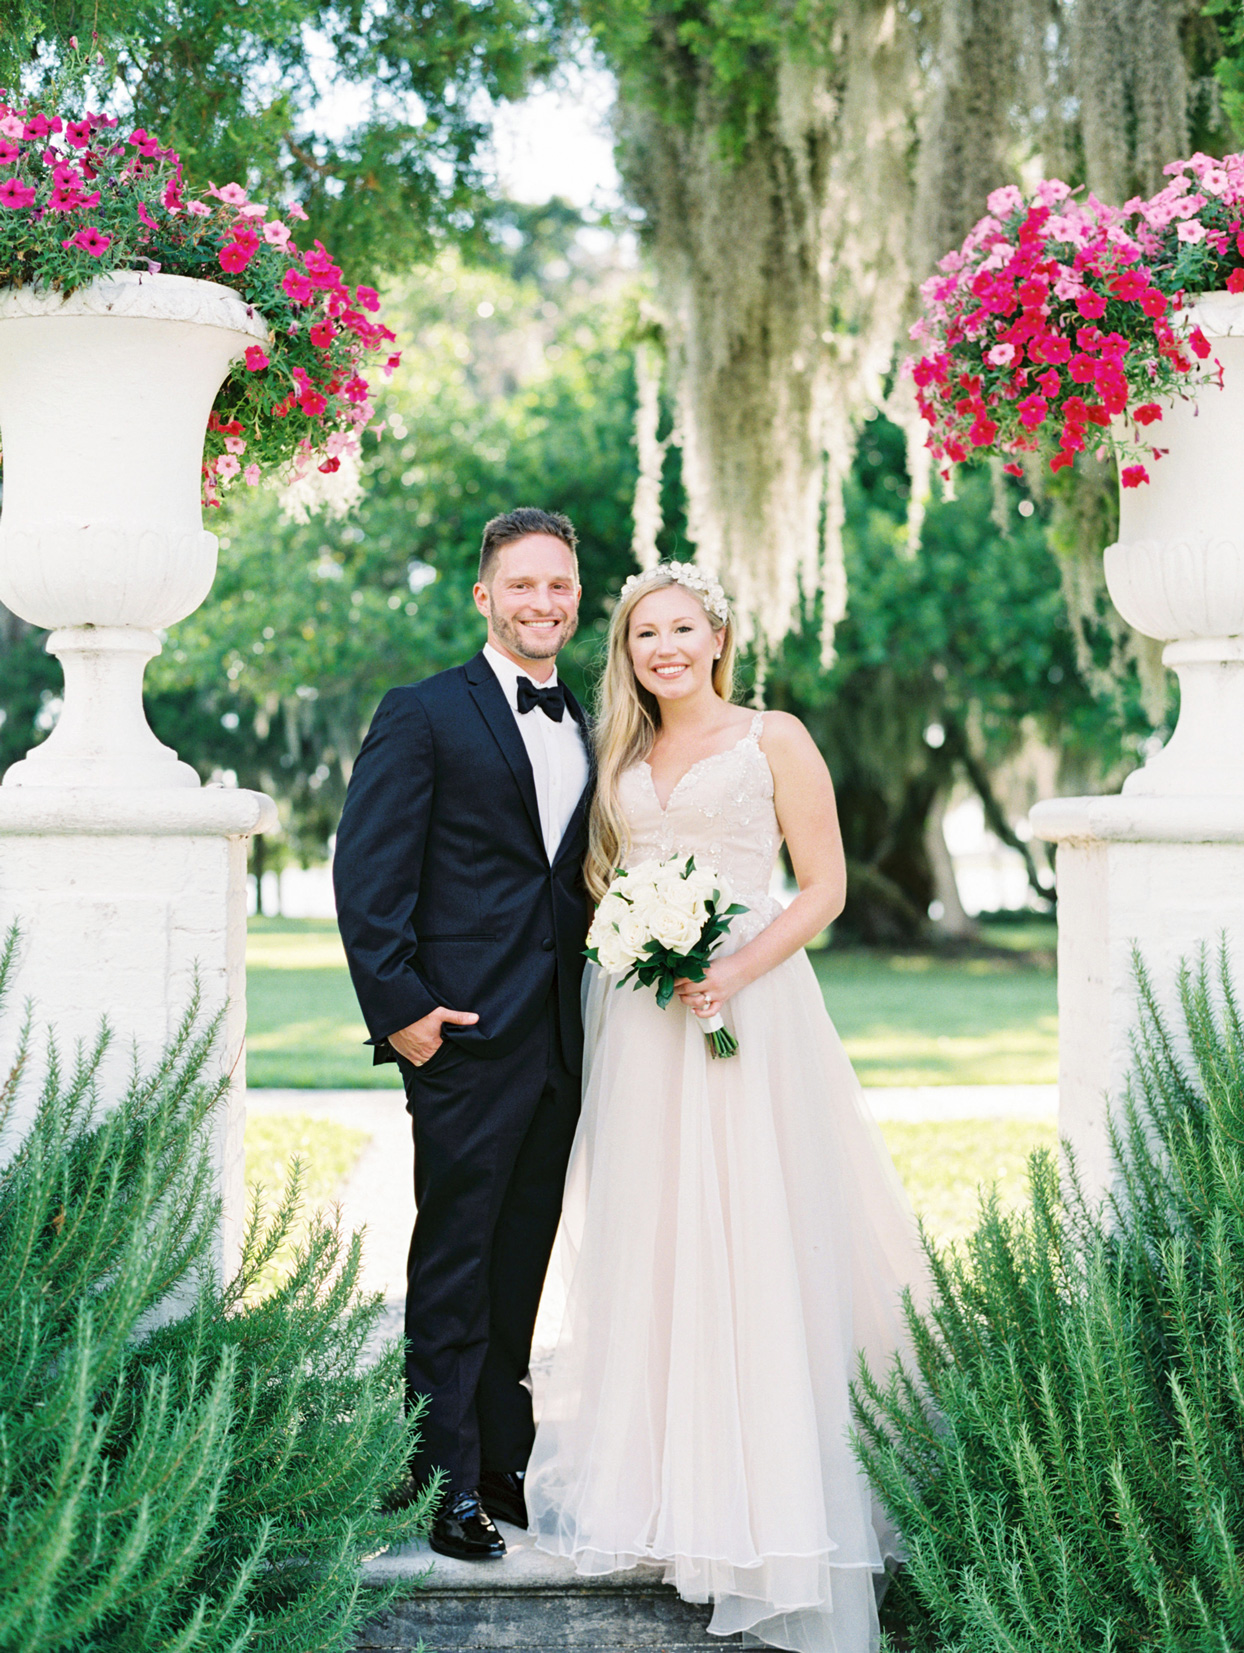 bride and groom standing between planters with pink flowers